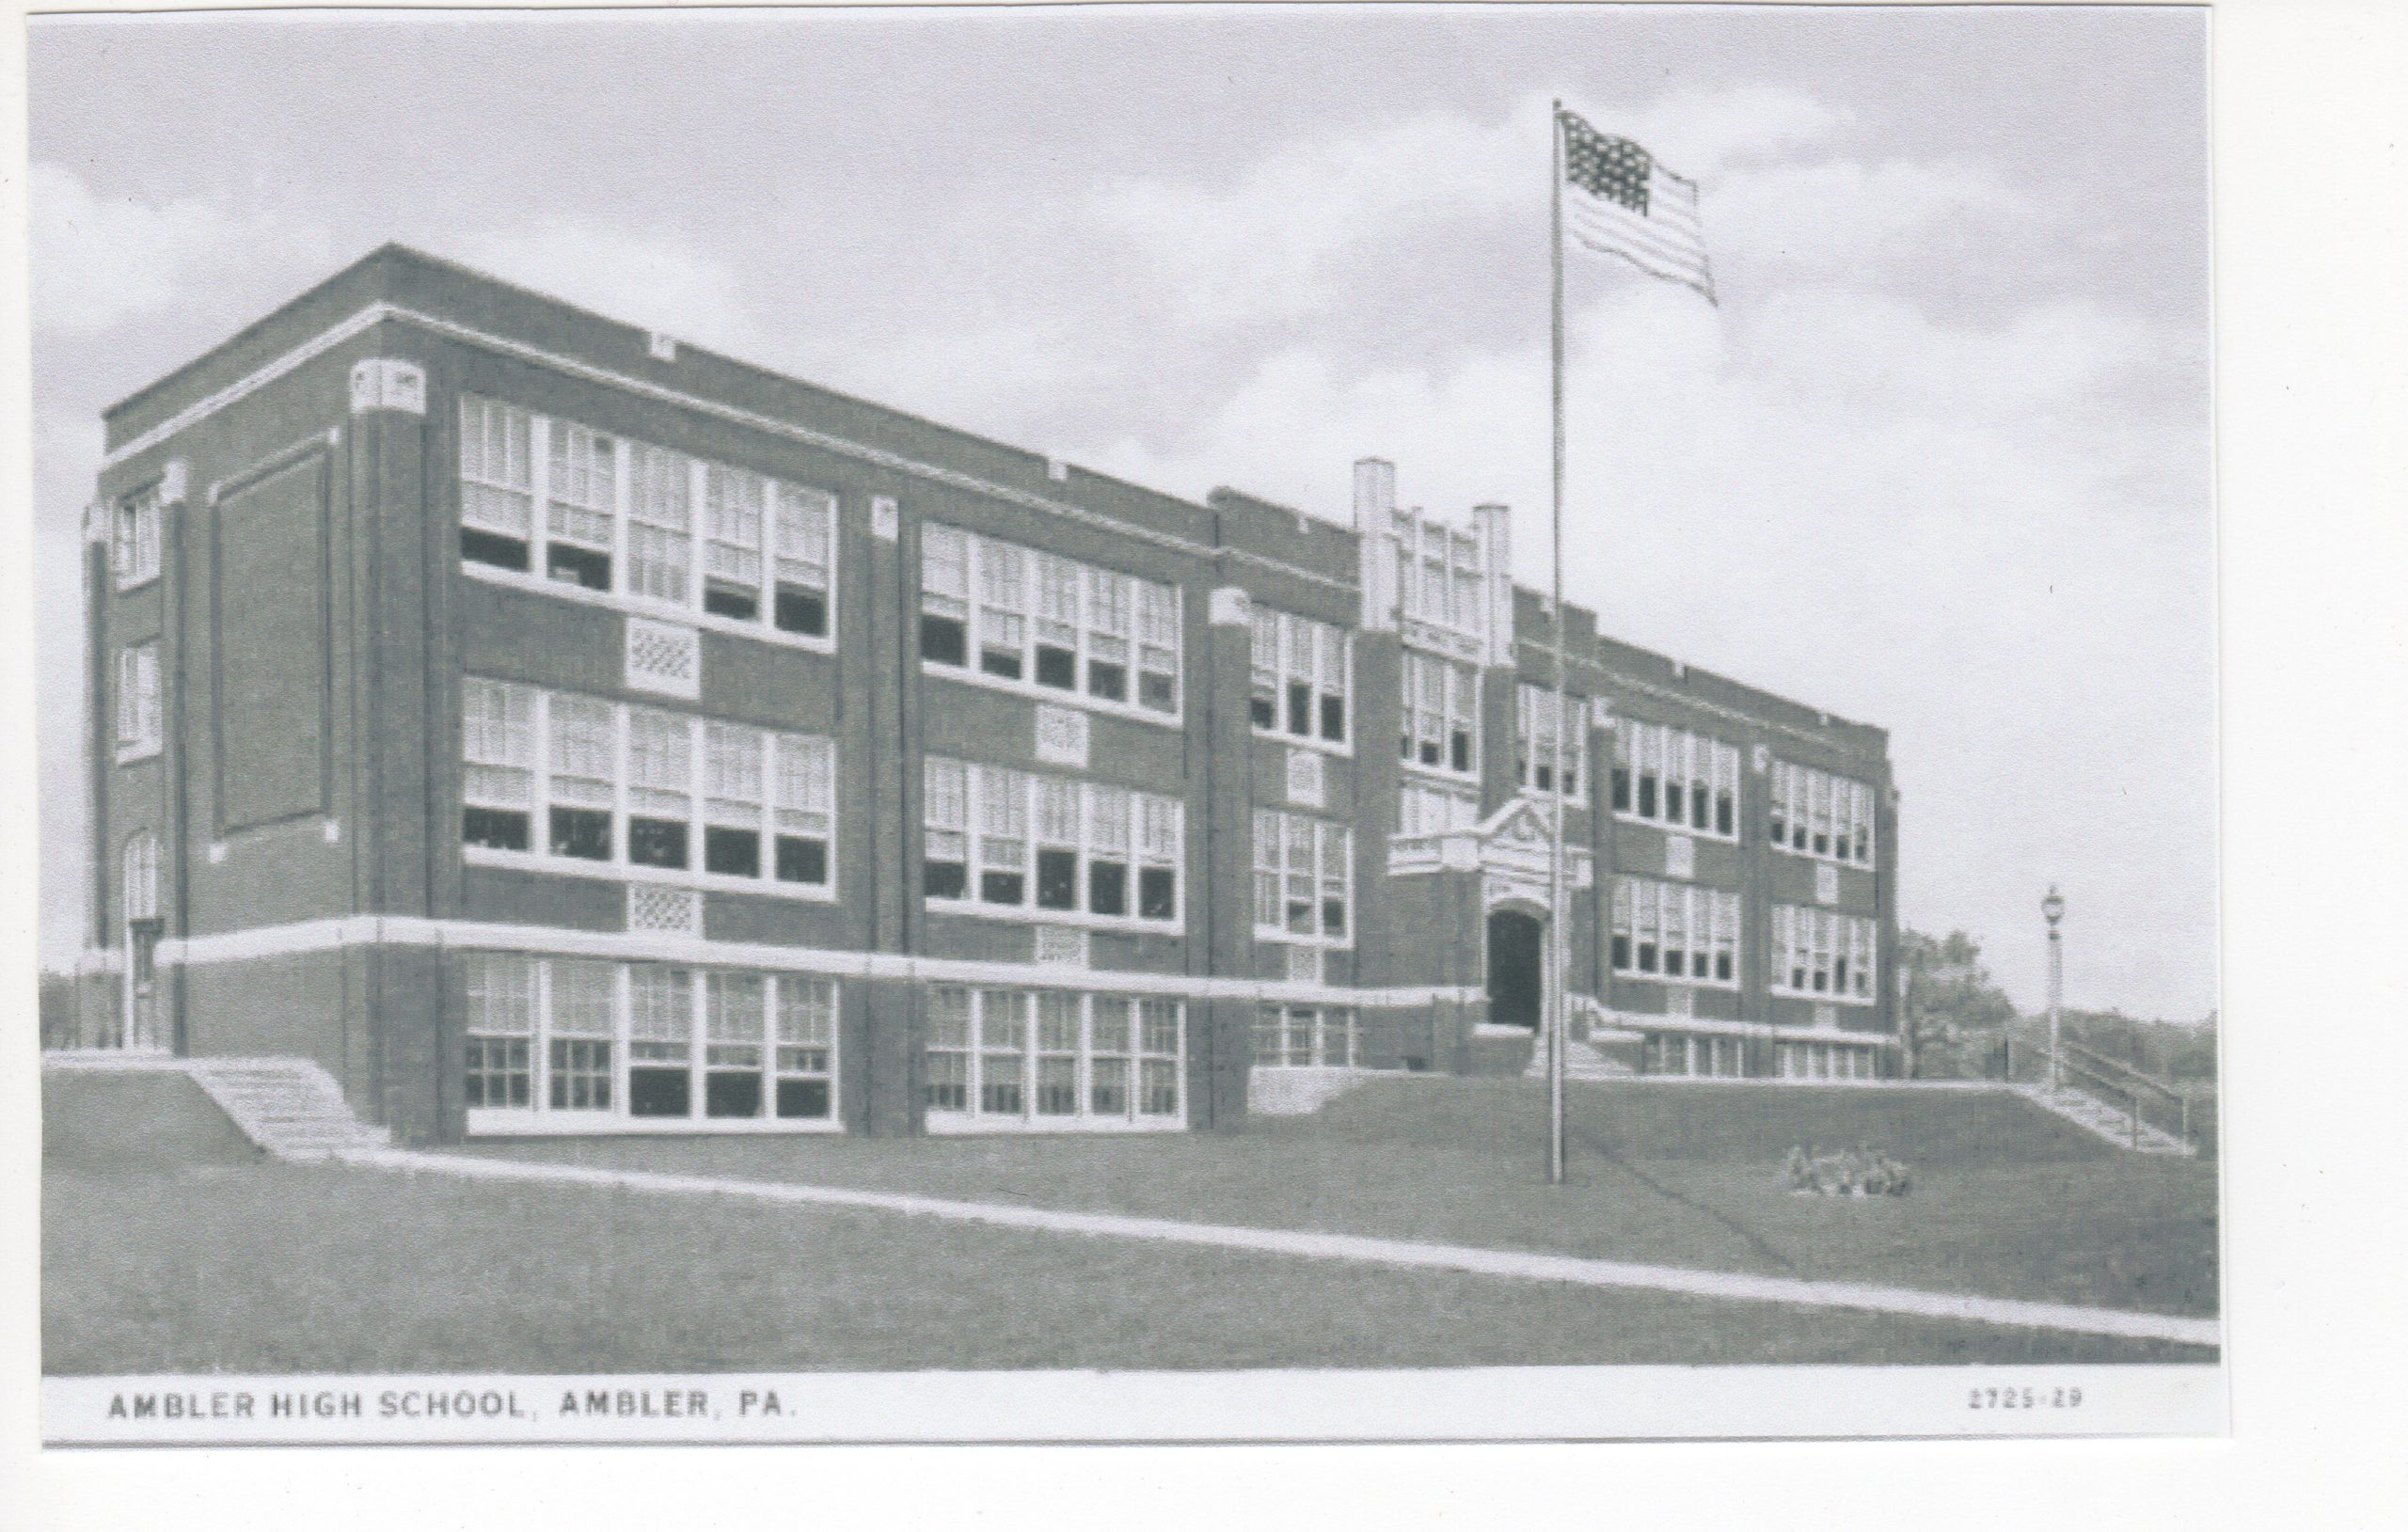 4125.5 Ambler Pa Postcard_Ambler High School